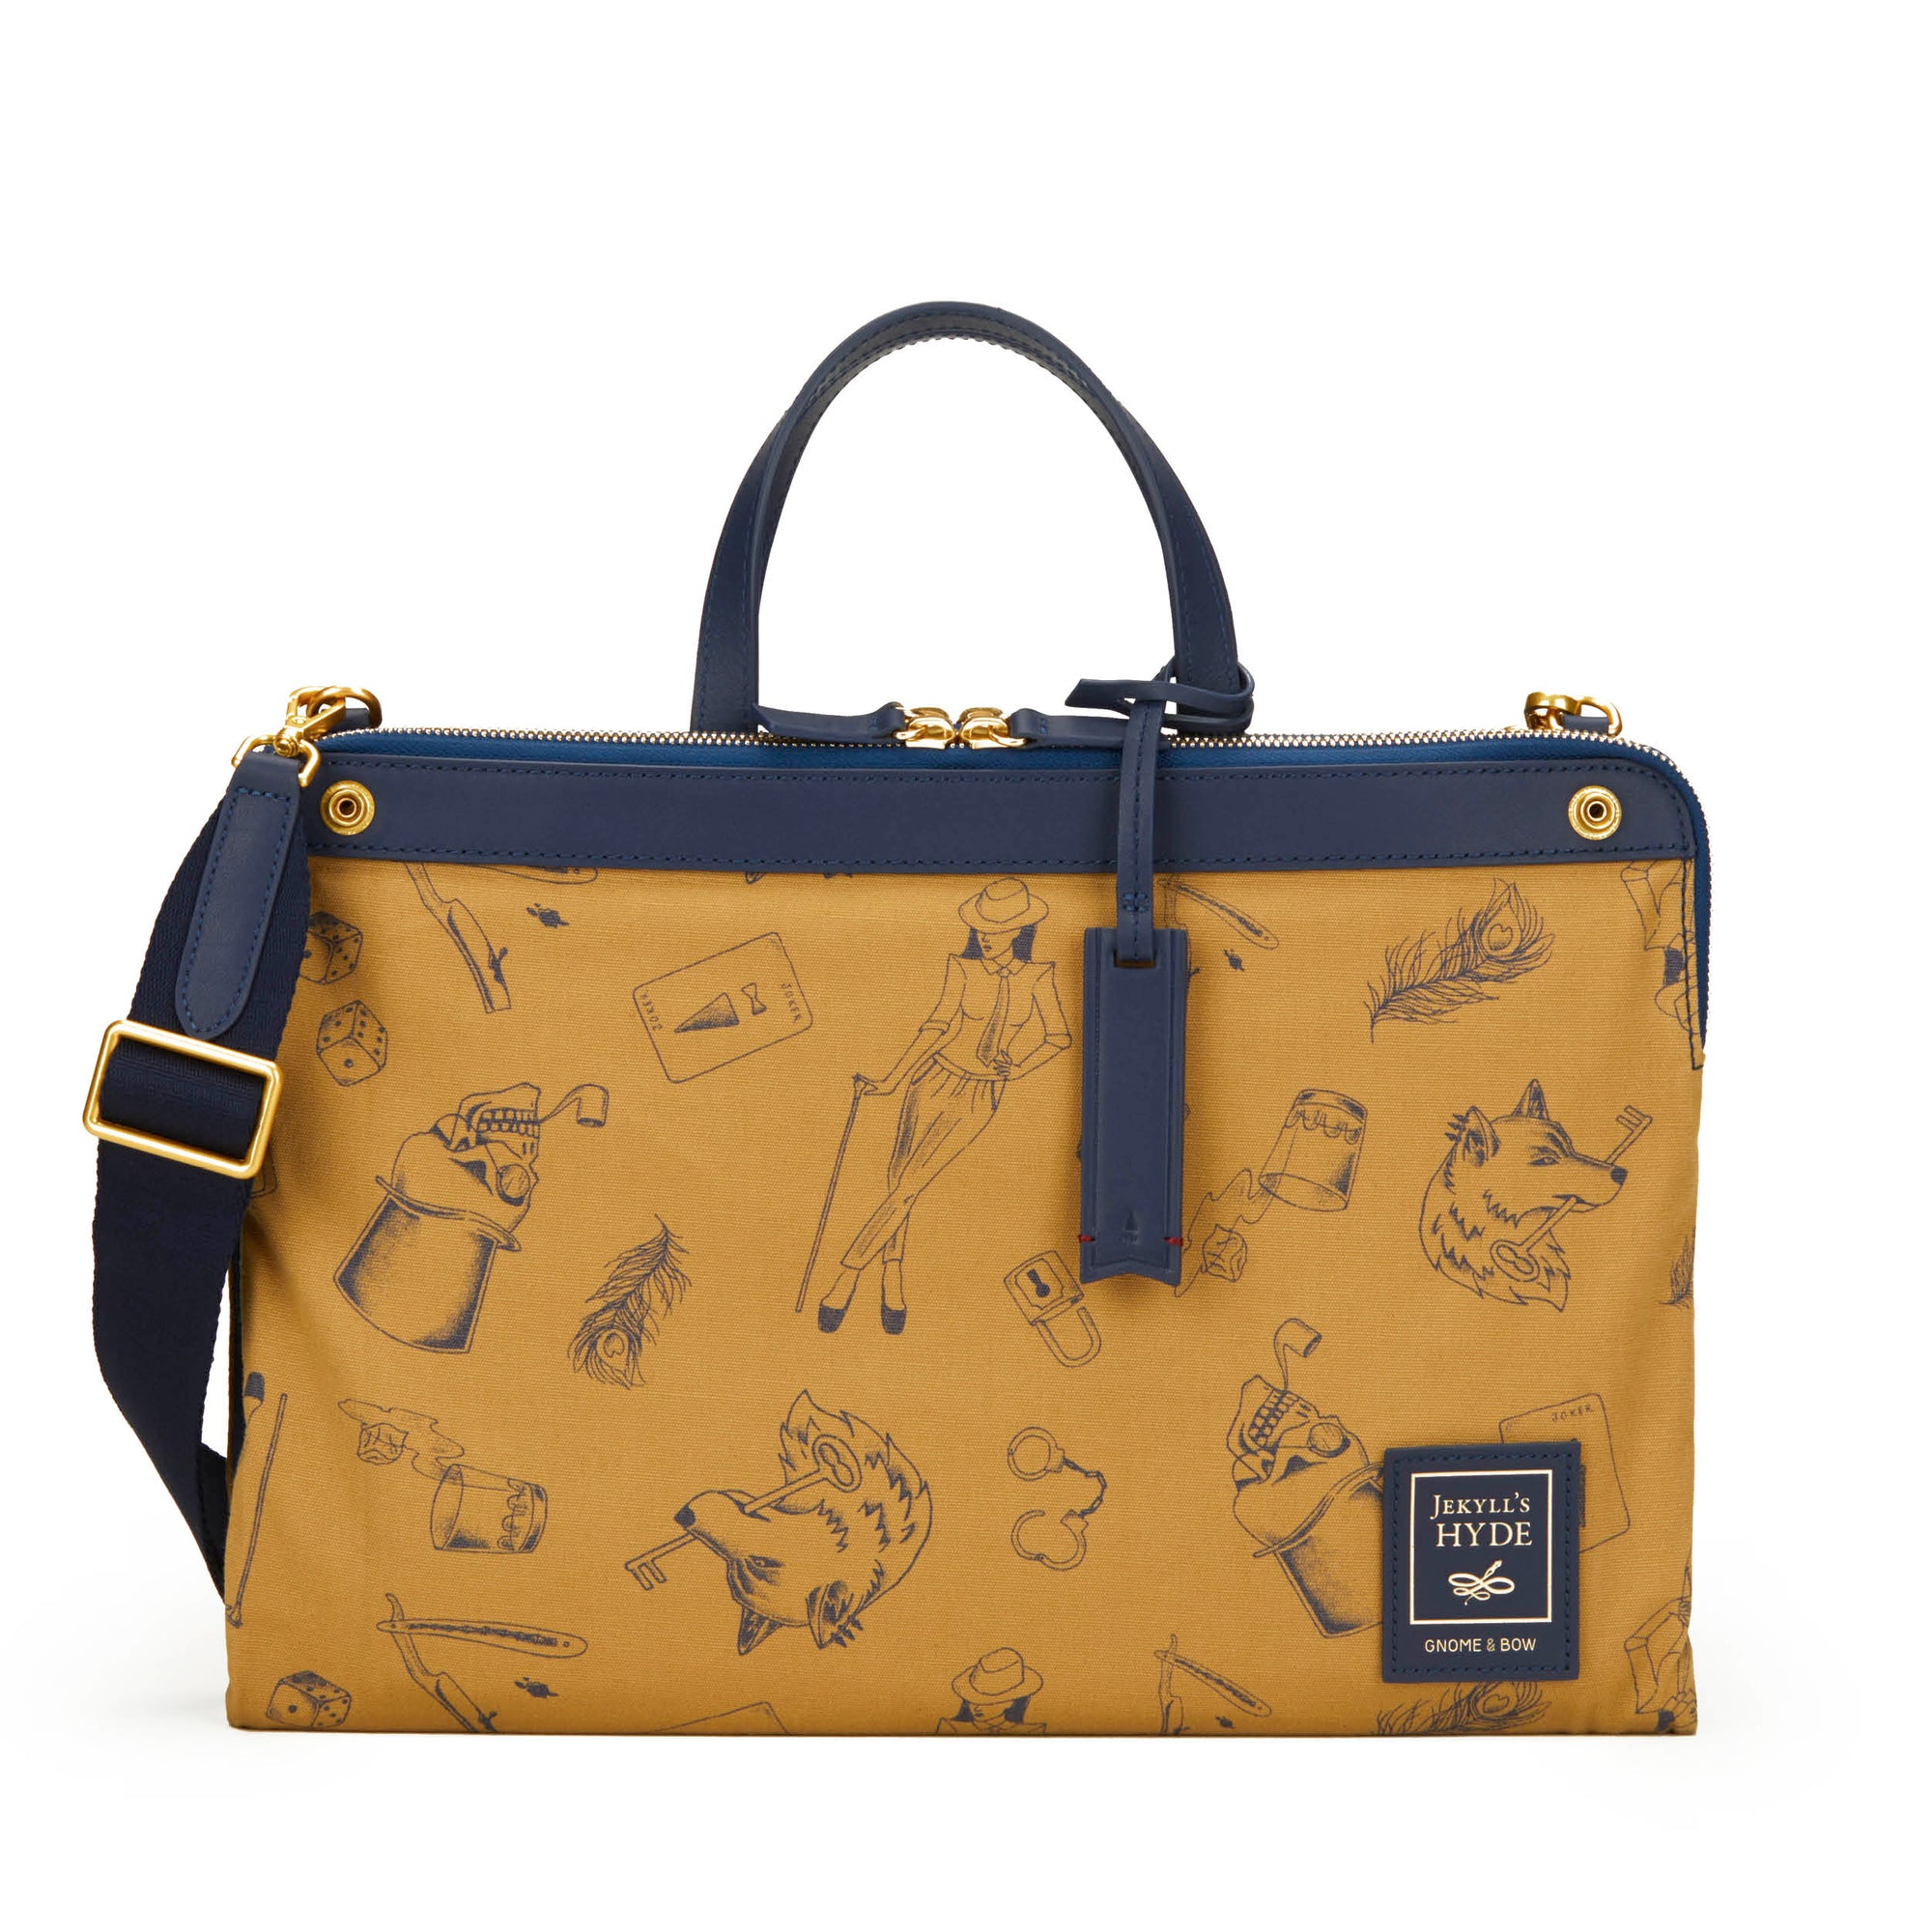 Milton Briefcase (Reversible) | Web-Exclusive - Gnome & Bow